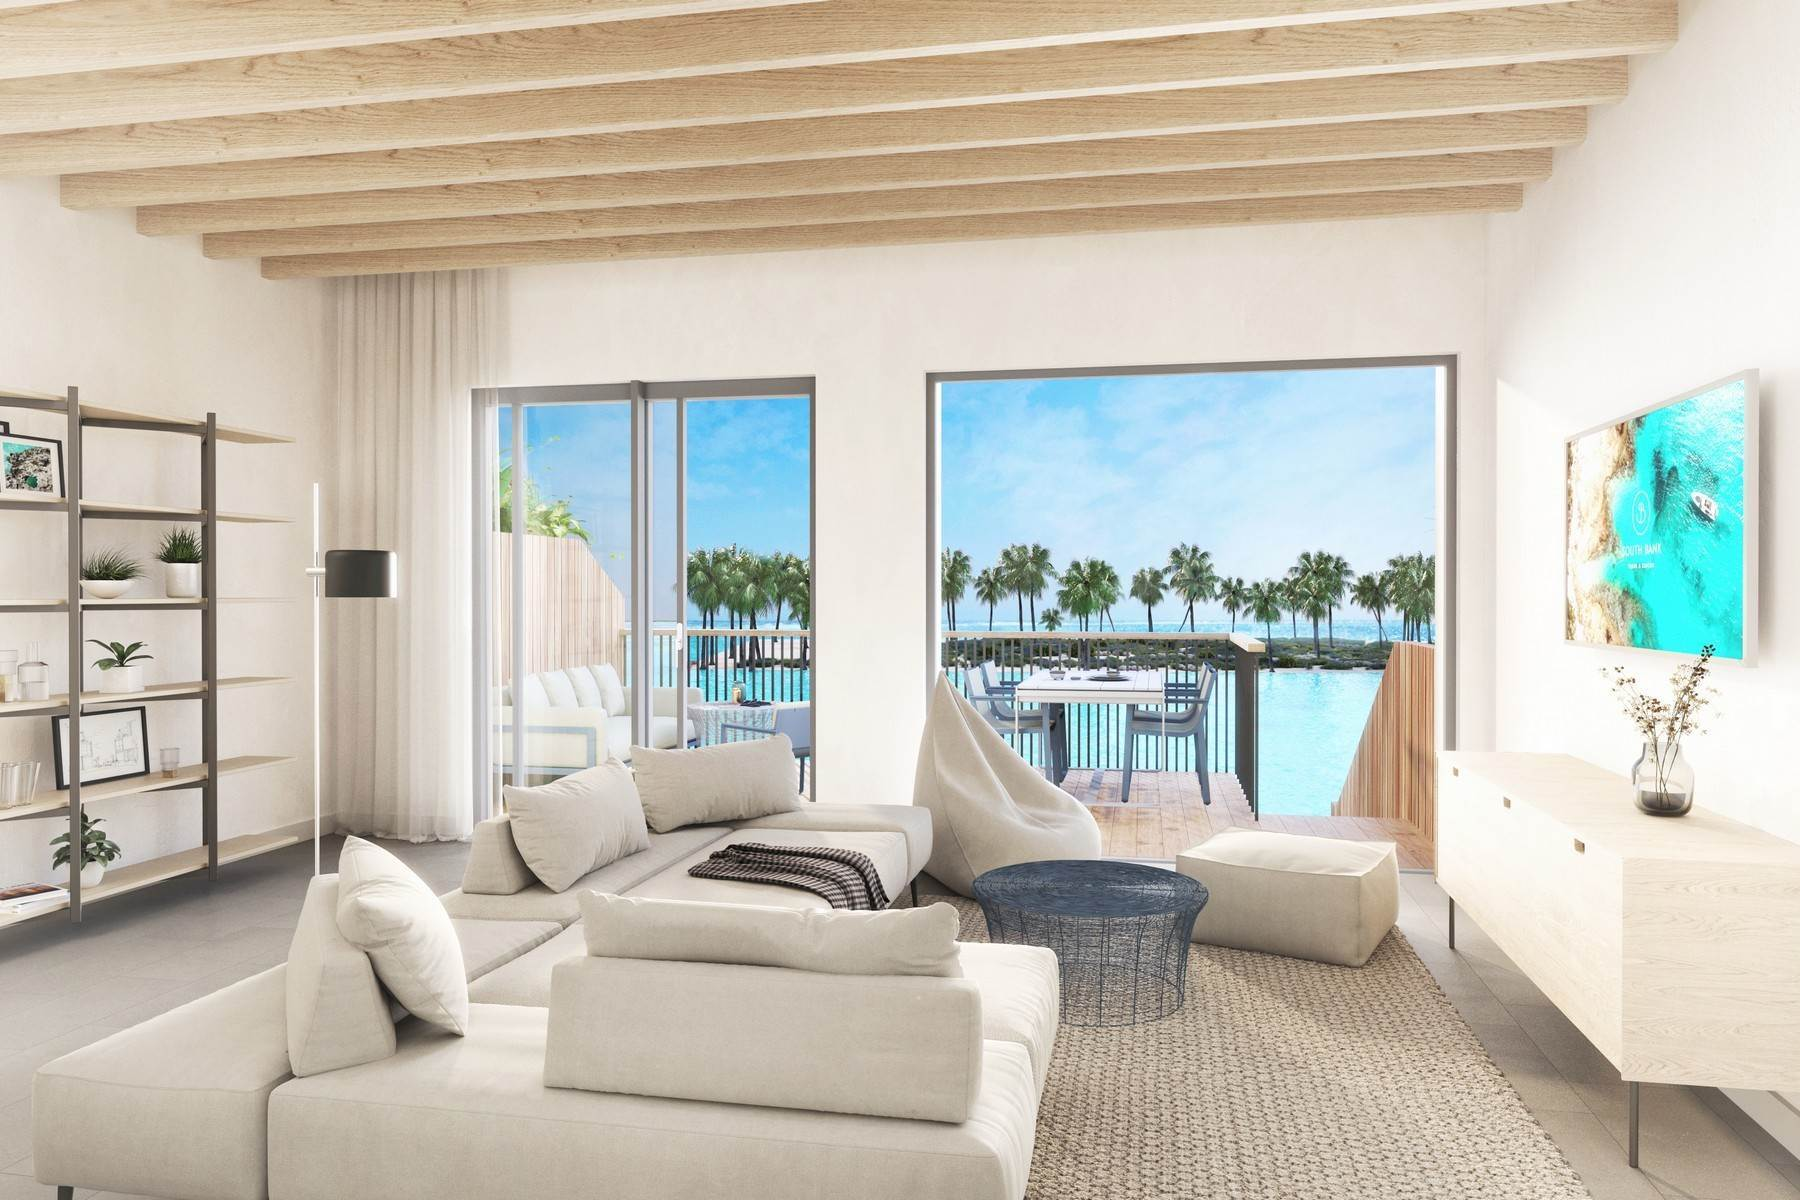 townhouses for Sale at SOUTH BANK - BOATHOUSES - TWO BEDROOM - E3 South Bank, Long Bay, Providenciales Turks And Caicos Islands